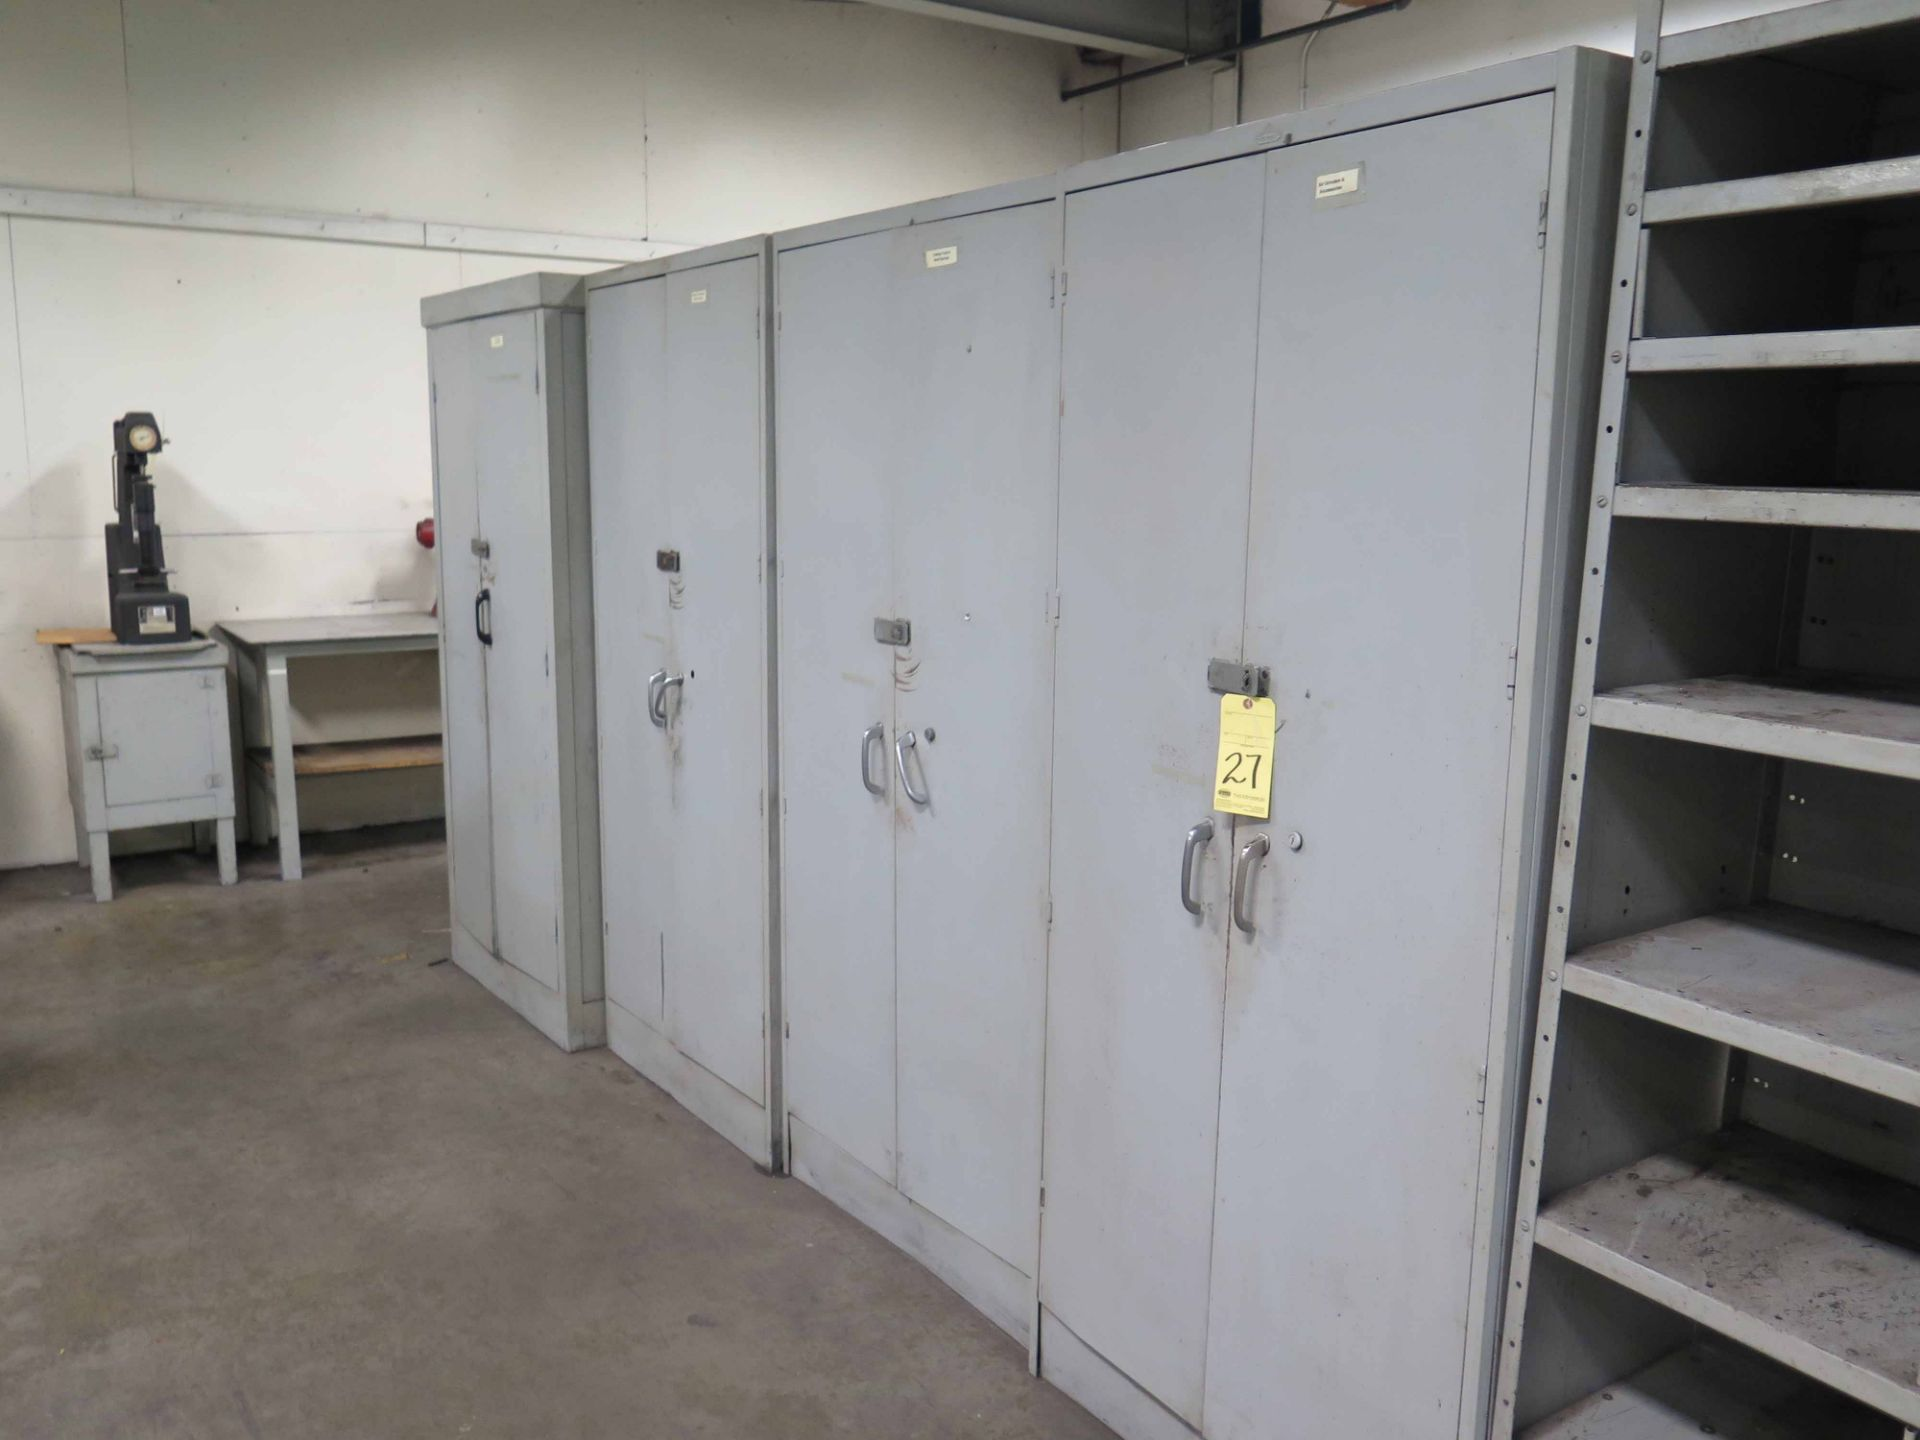 Lot 27 - LOT CONSISTING OF: (5) metal storage cabinets & metal shelf unit